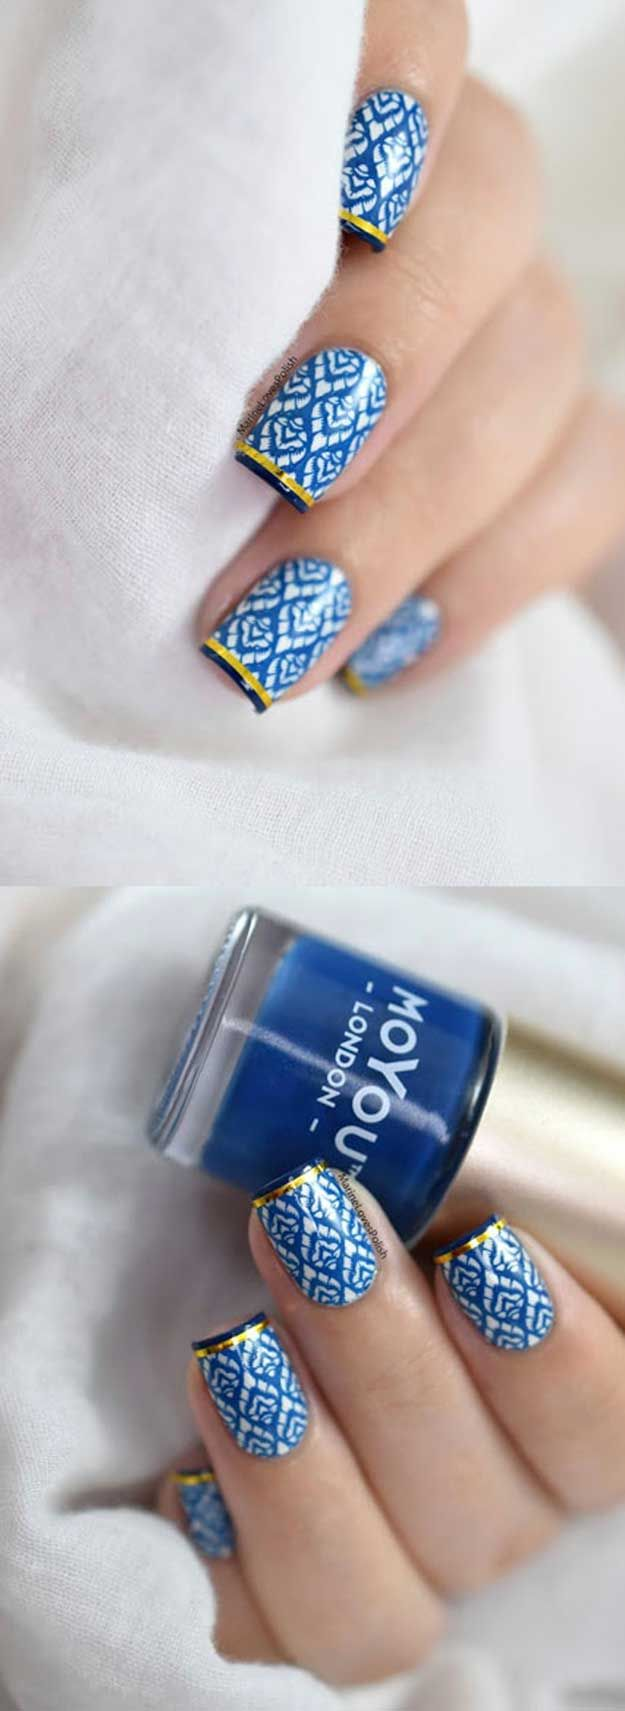 Best 25+ Nail art at home ideas on Pinterest | Easy nail designs ...